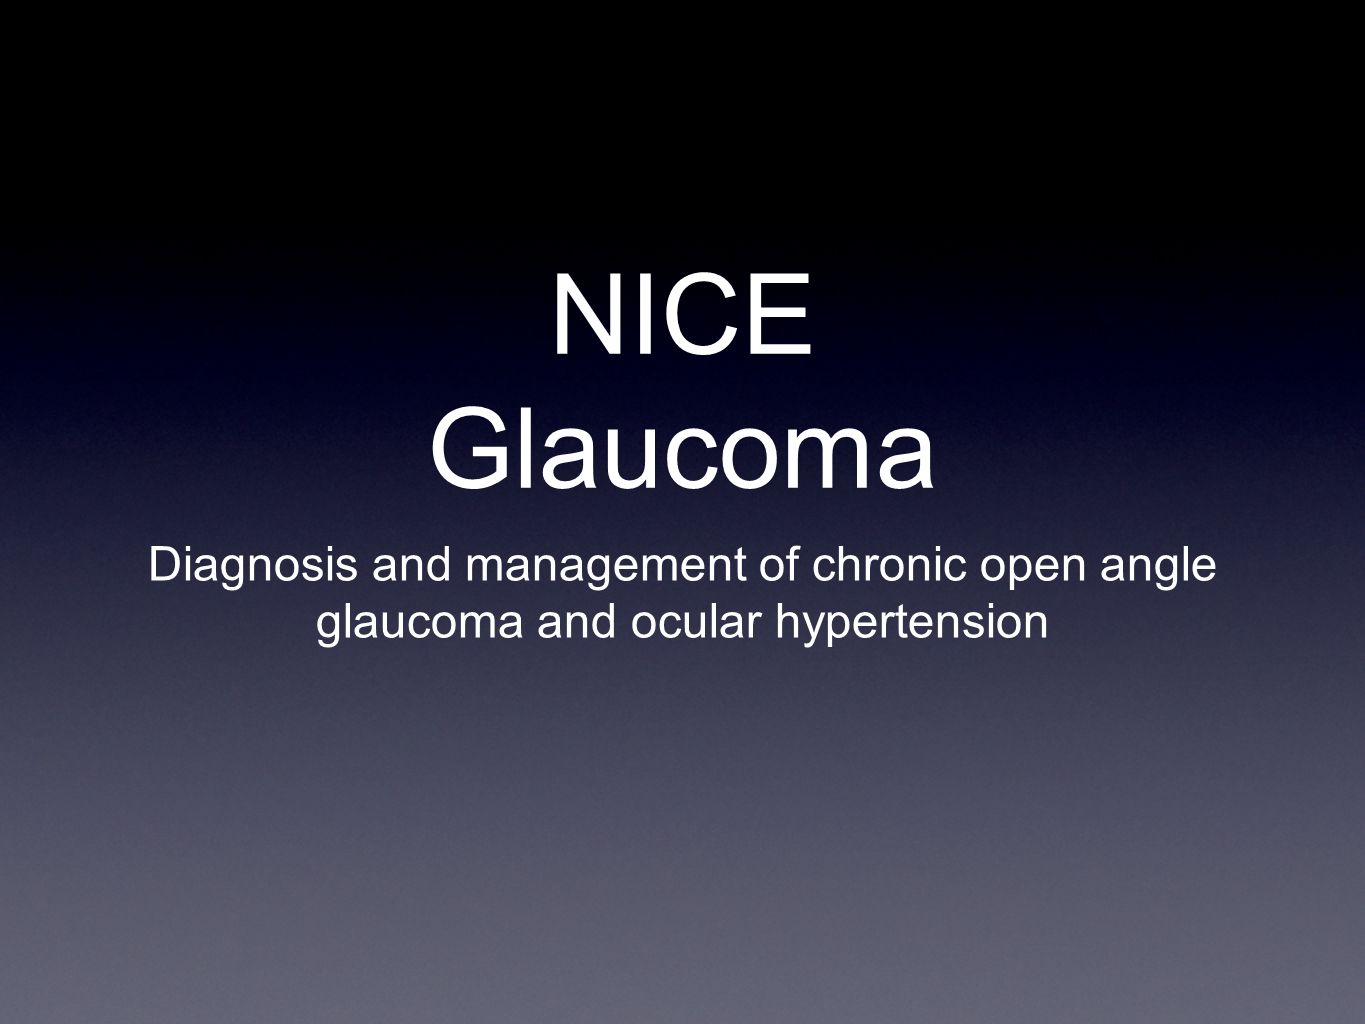 NICE Glaucoma Diagnosis and management of chronic open angle glaucoma and ocular hypertension